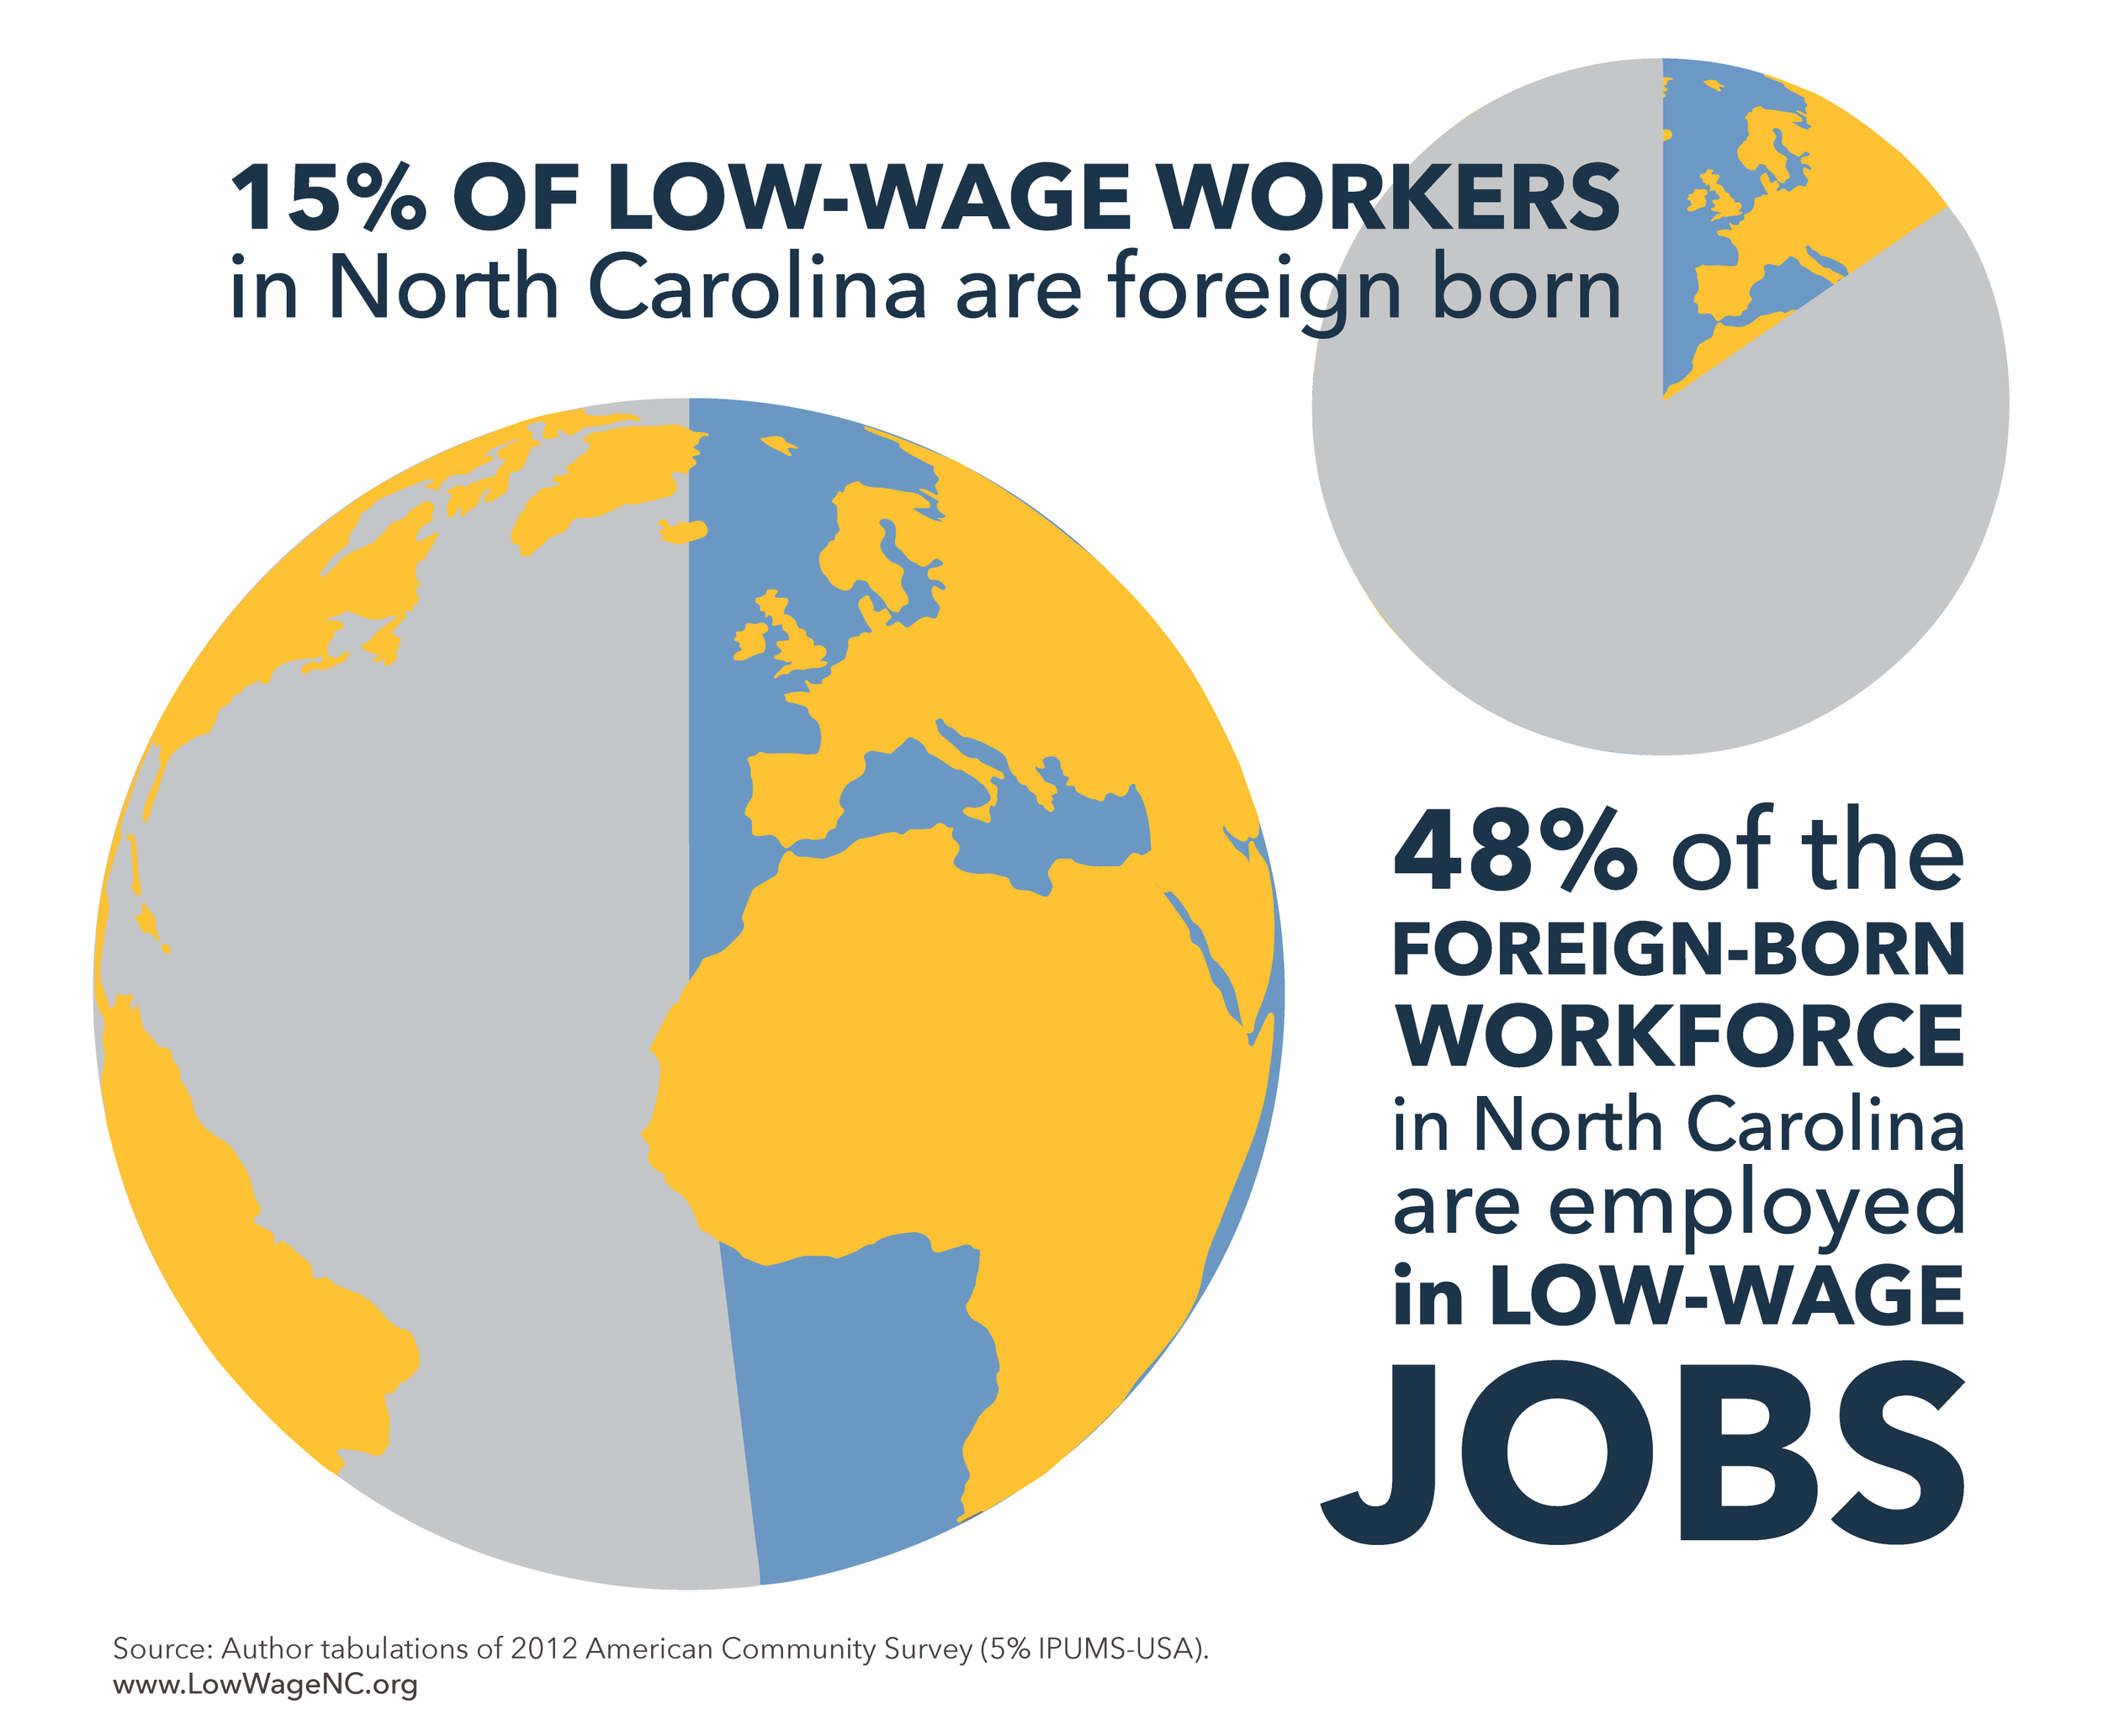 almost half of foreign-born workers are employed in low-wage jobs